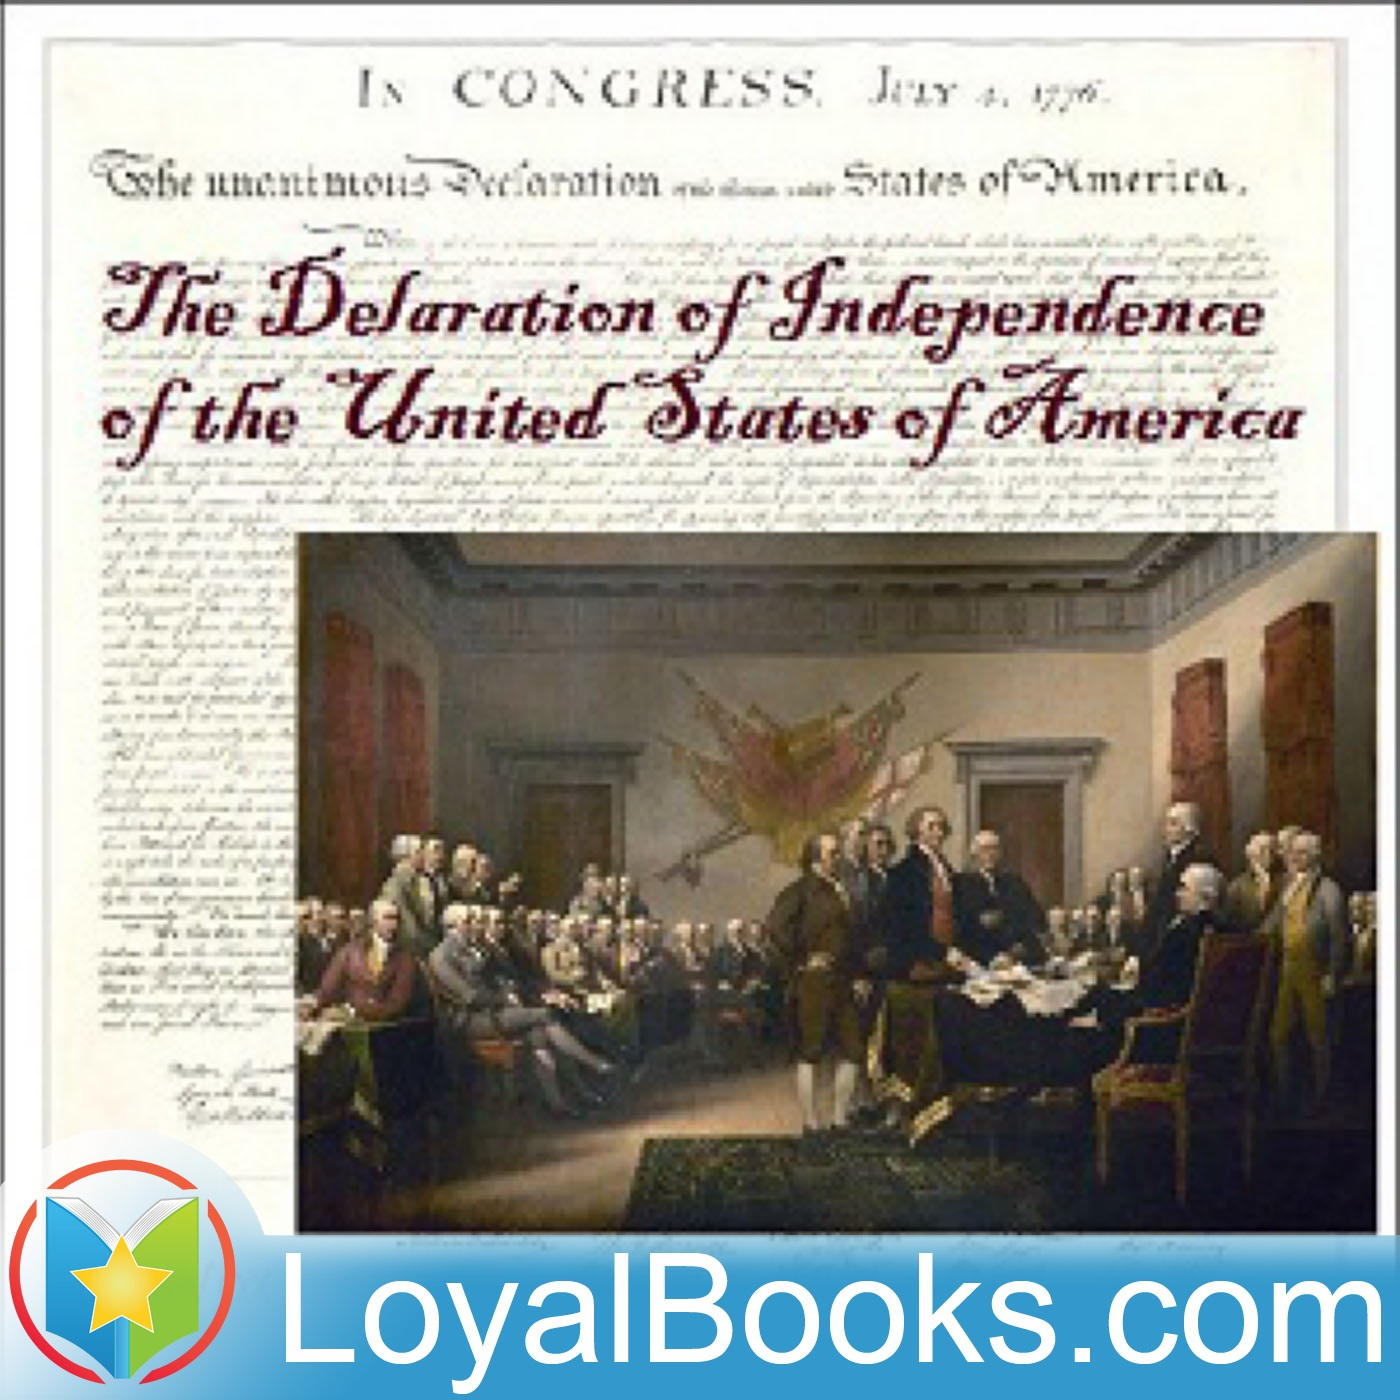 The Declaration Of Independence Of The United States Of America By  The Declaration Of Independence Of The United States Of America By Founding  Fathers Of The United States By Loyal Books On Apple Podcasts